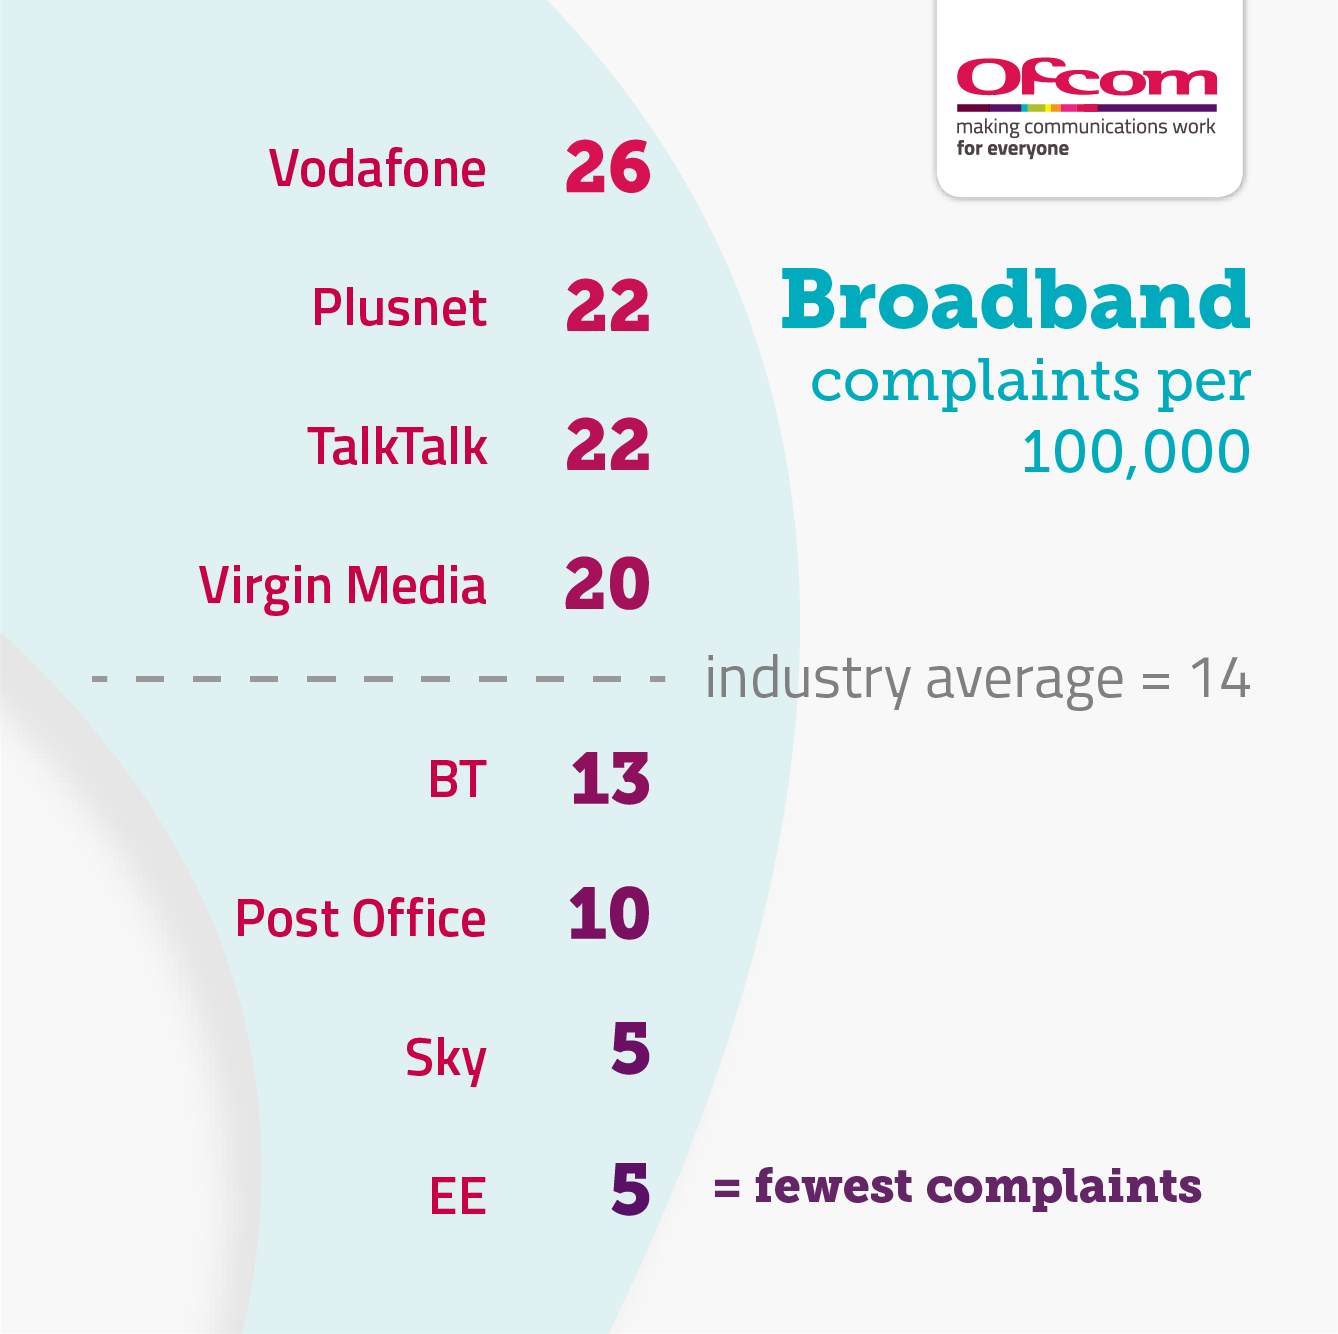 Vodafone = 26, Plusnet = 22, TalkTalk = 22, Virgin Media = 20, industry average = 14, BT = 13, Post Office = 10, Sky = 5, EE = 5